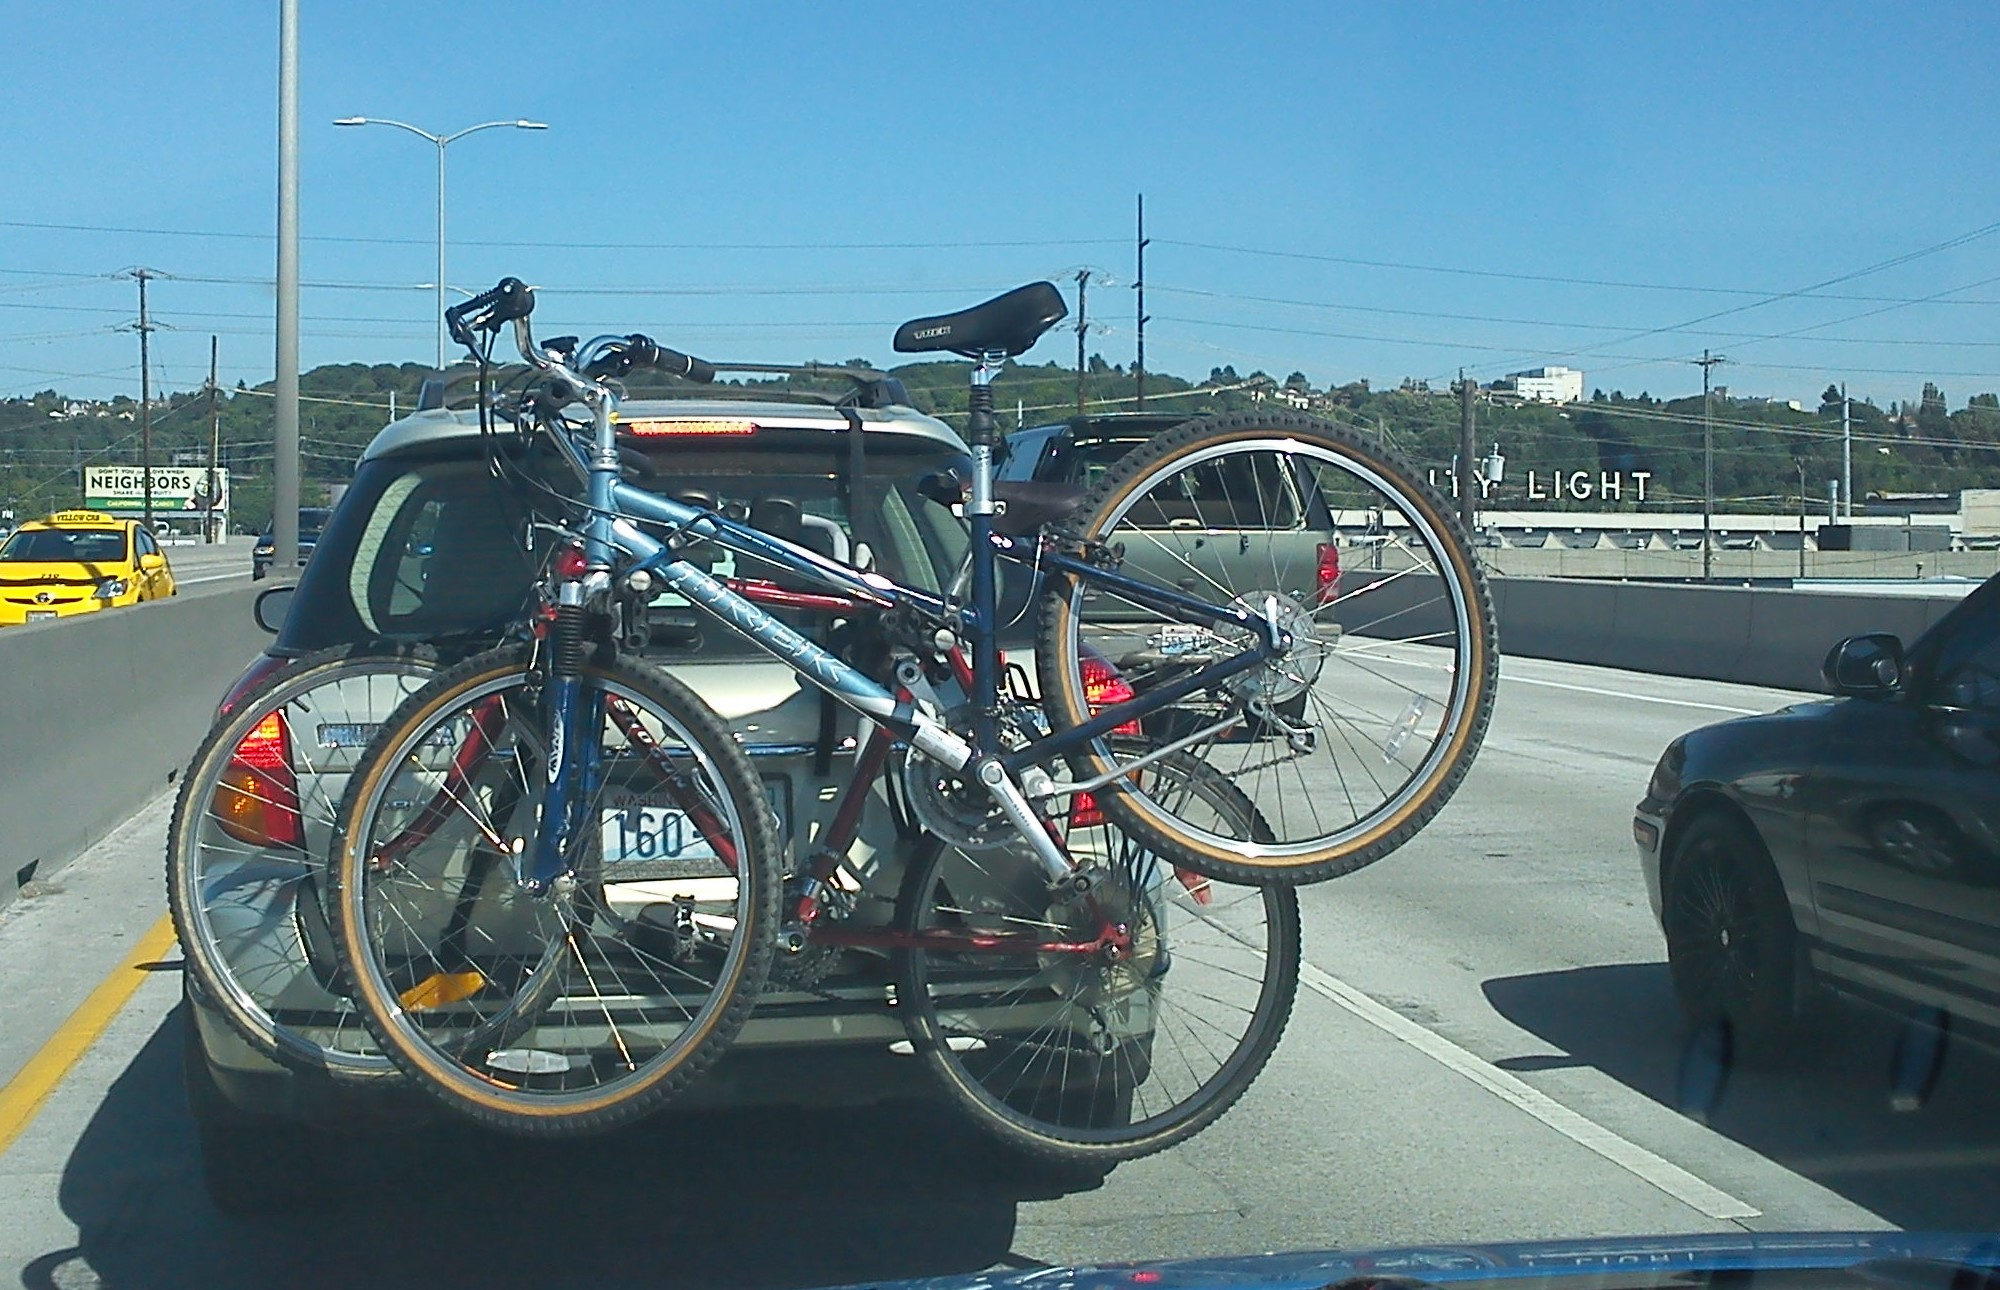 dangerously mounted bikes on a car rack